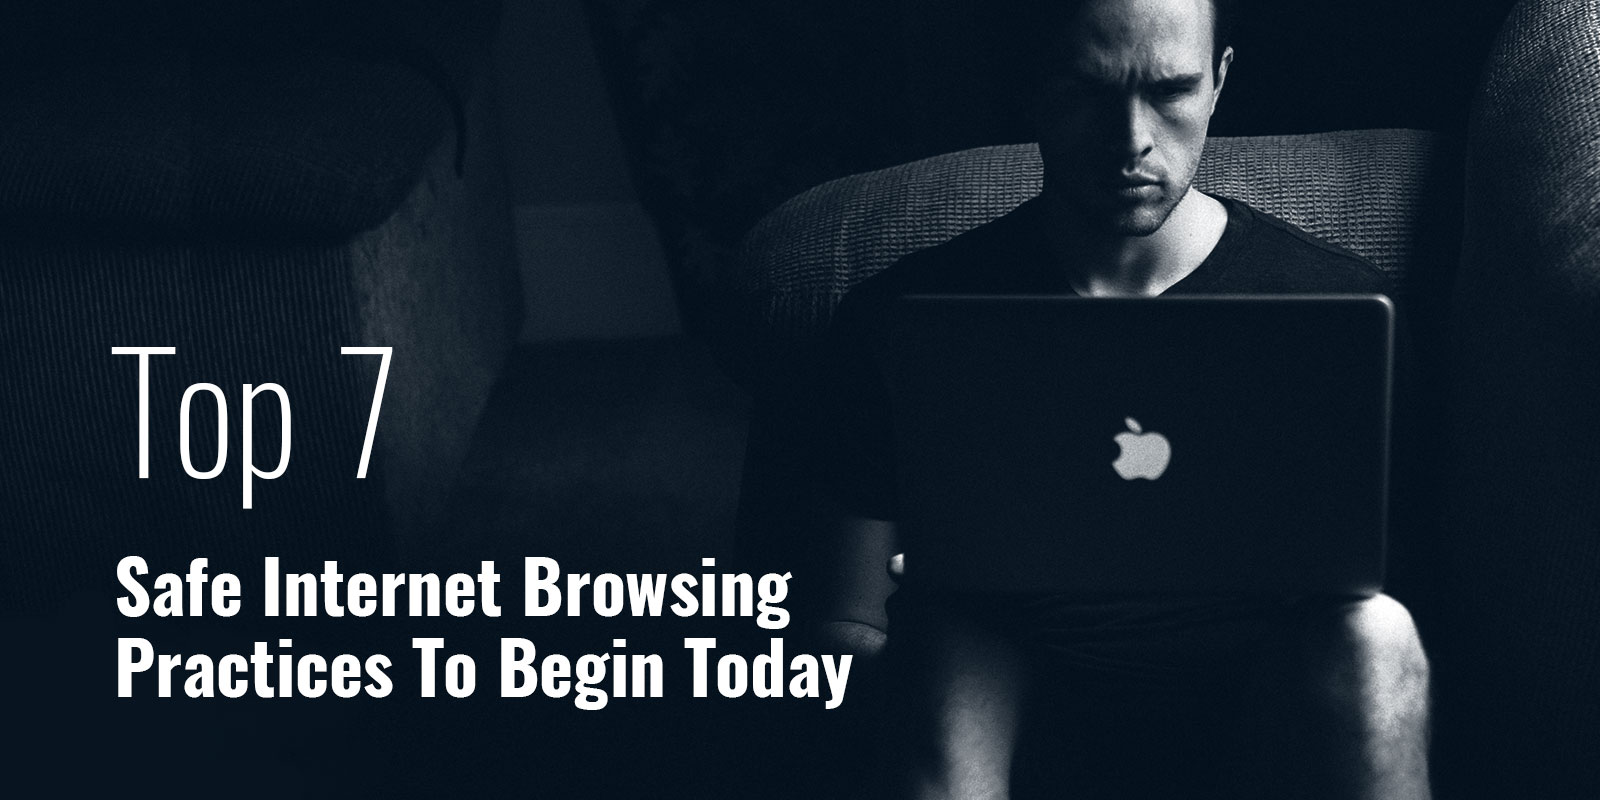 Top 7 Safe Internet Browsing Practices To Begin Today